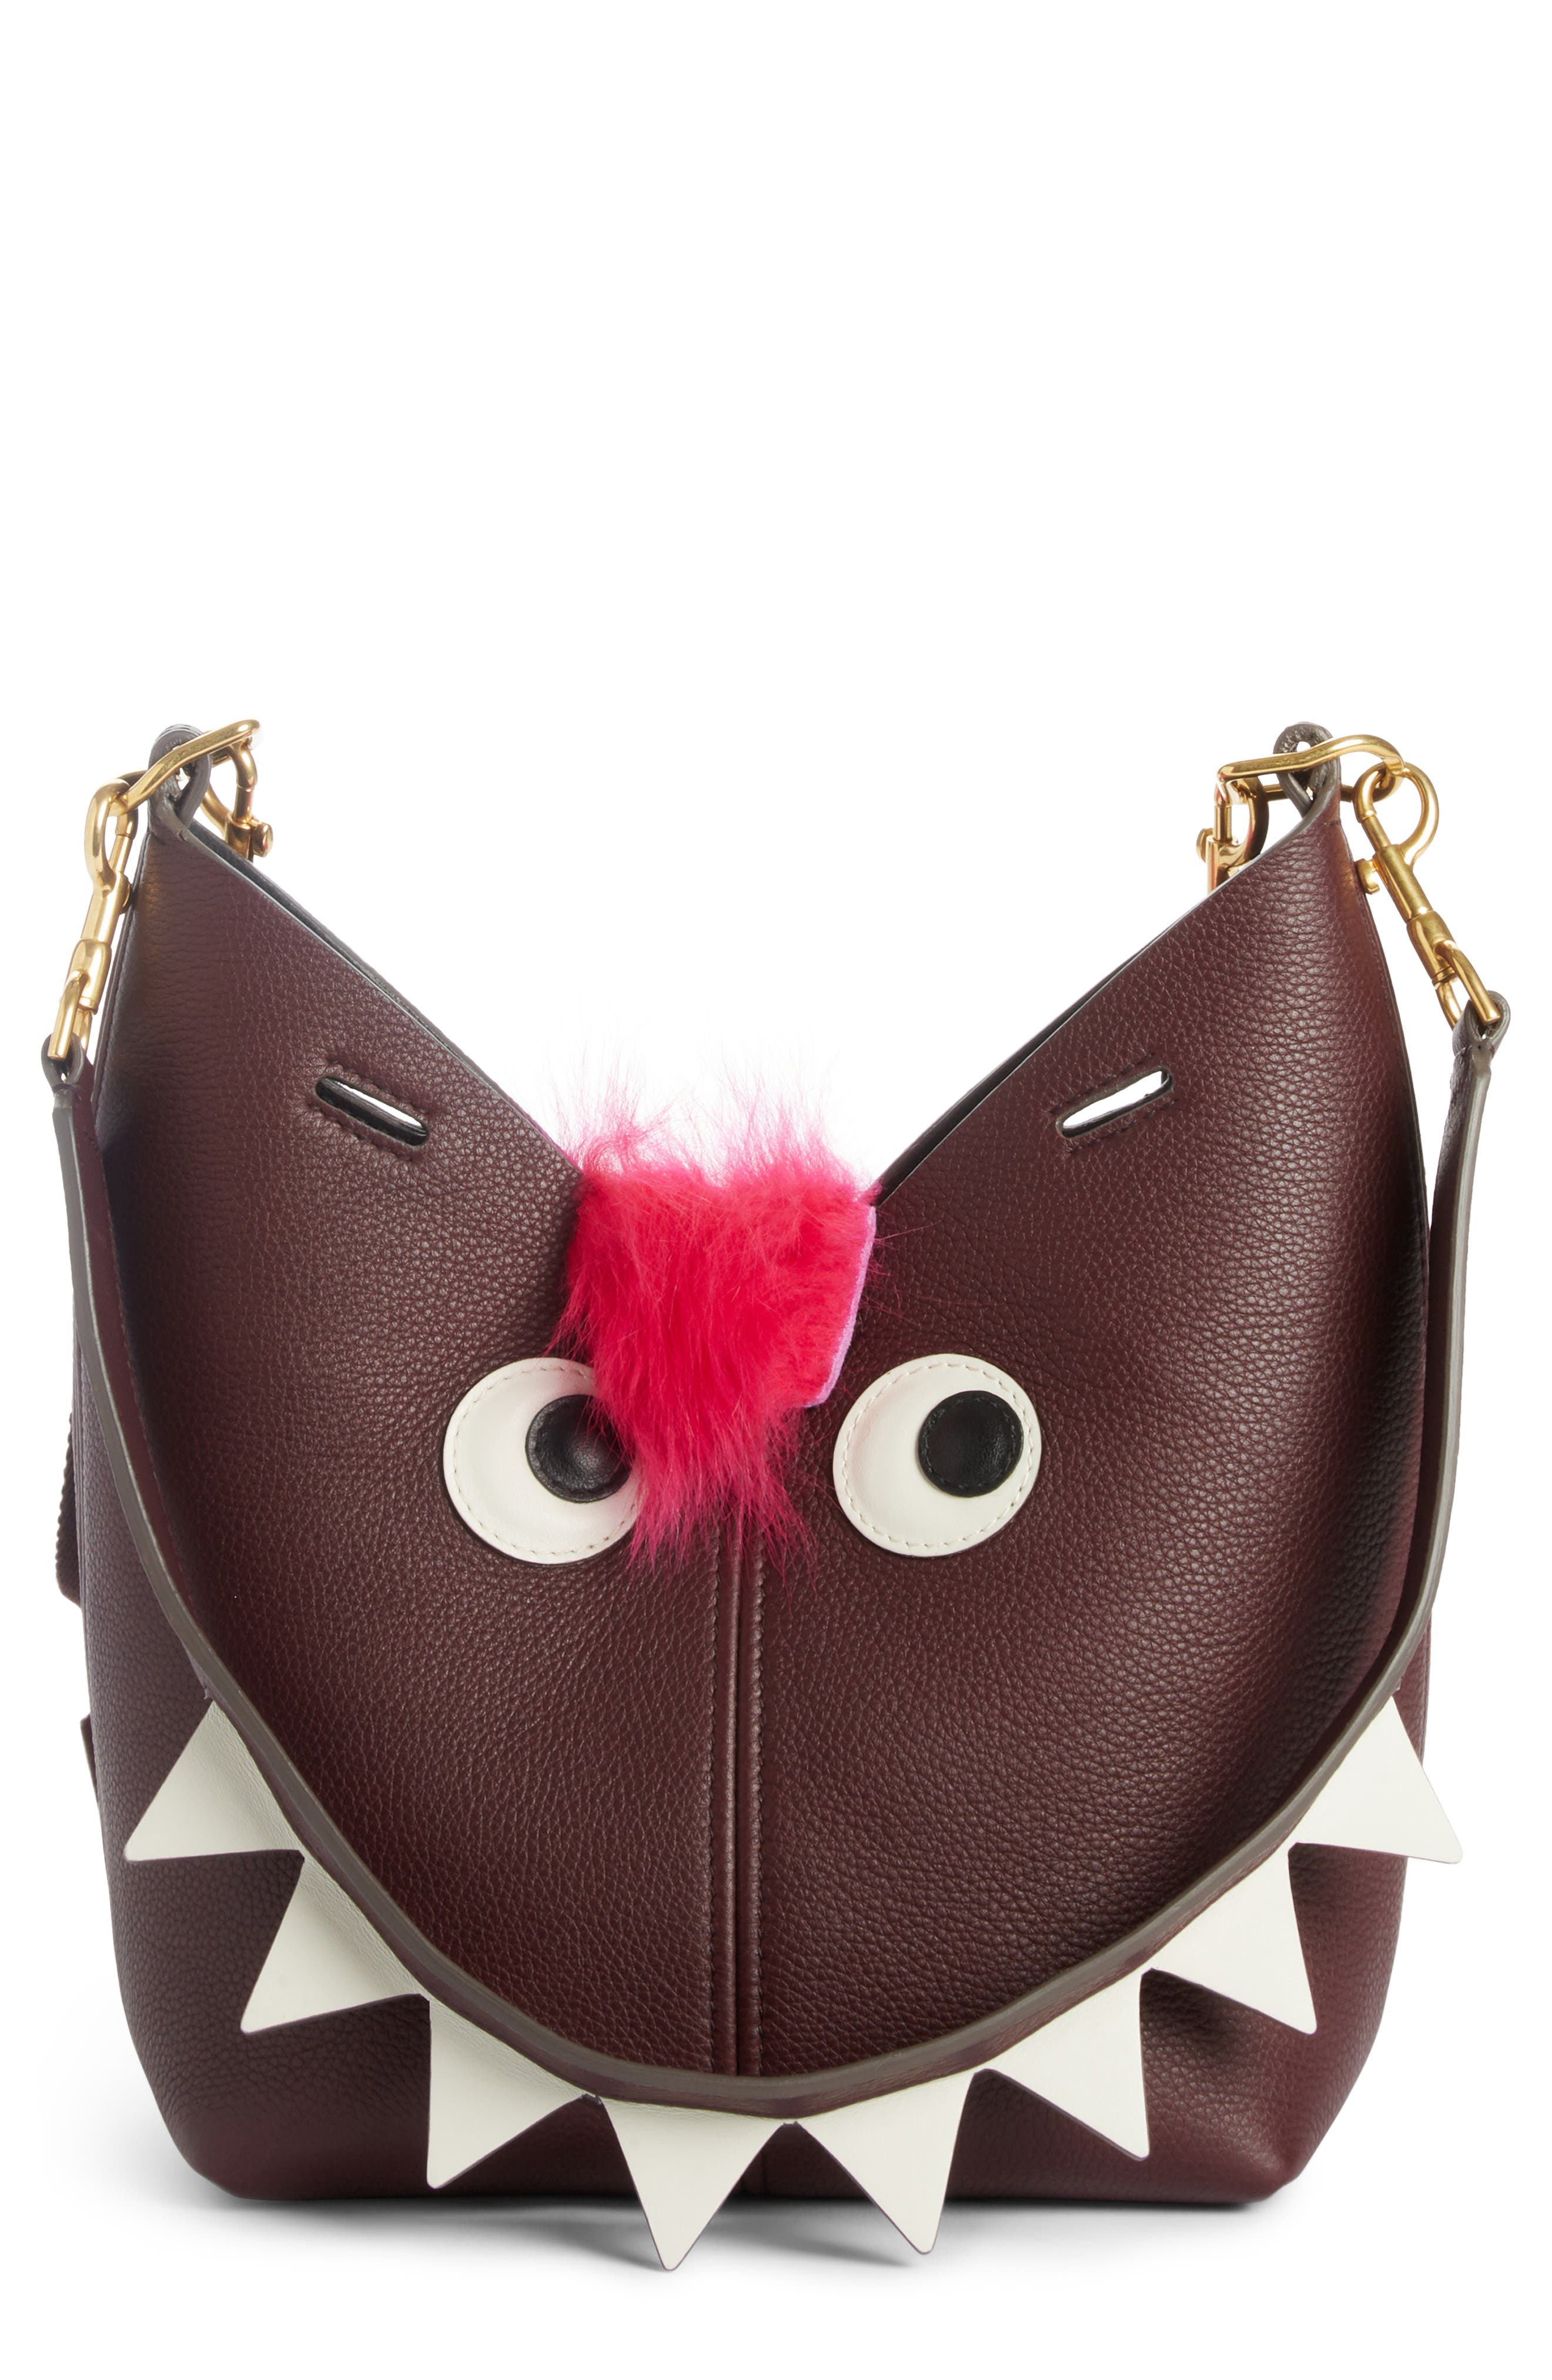 Alternate Image 1 Selected - Anya Hindmarch Build a Bag Mini Creature Leather Shoulder Bag with Genuine Shearling